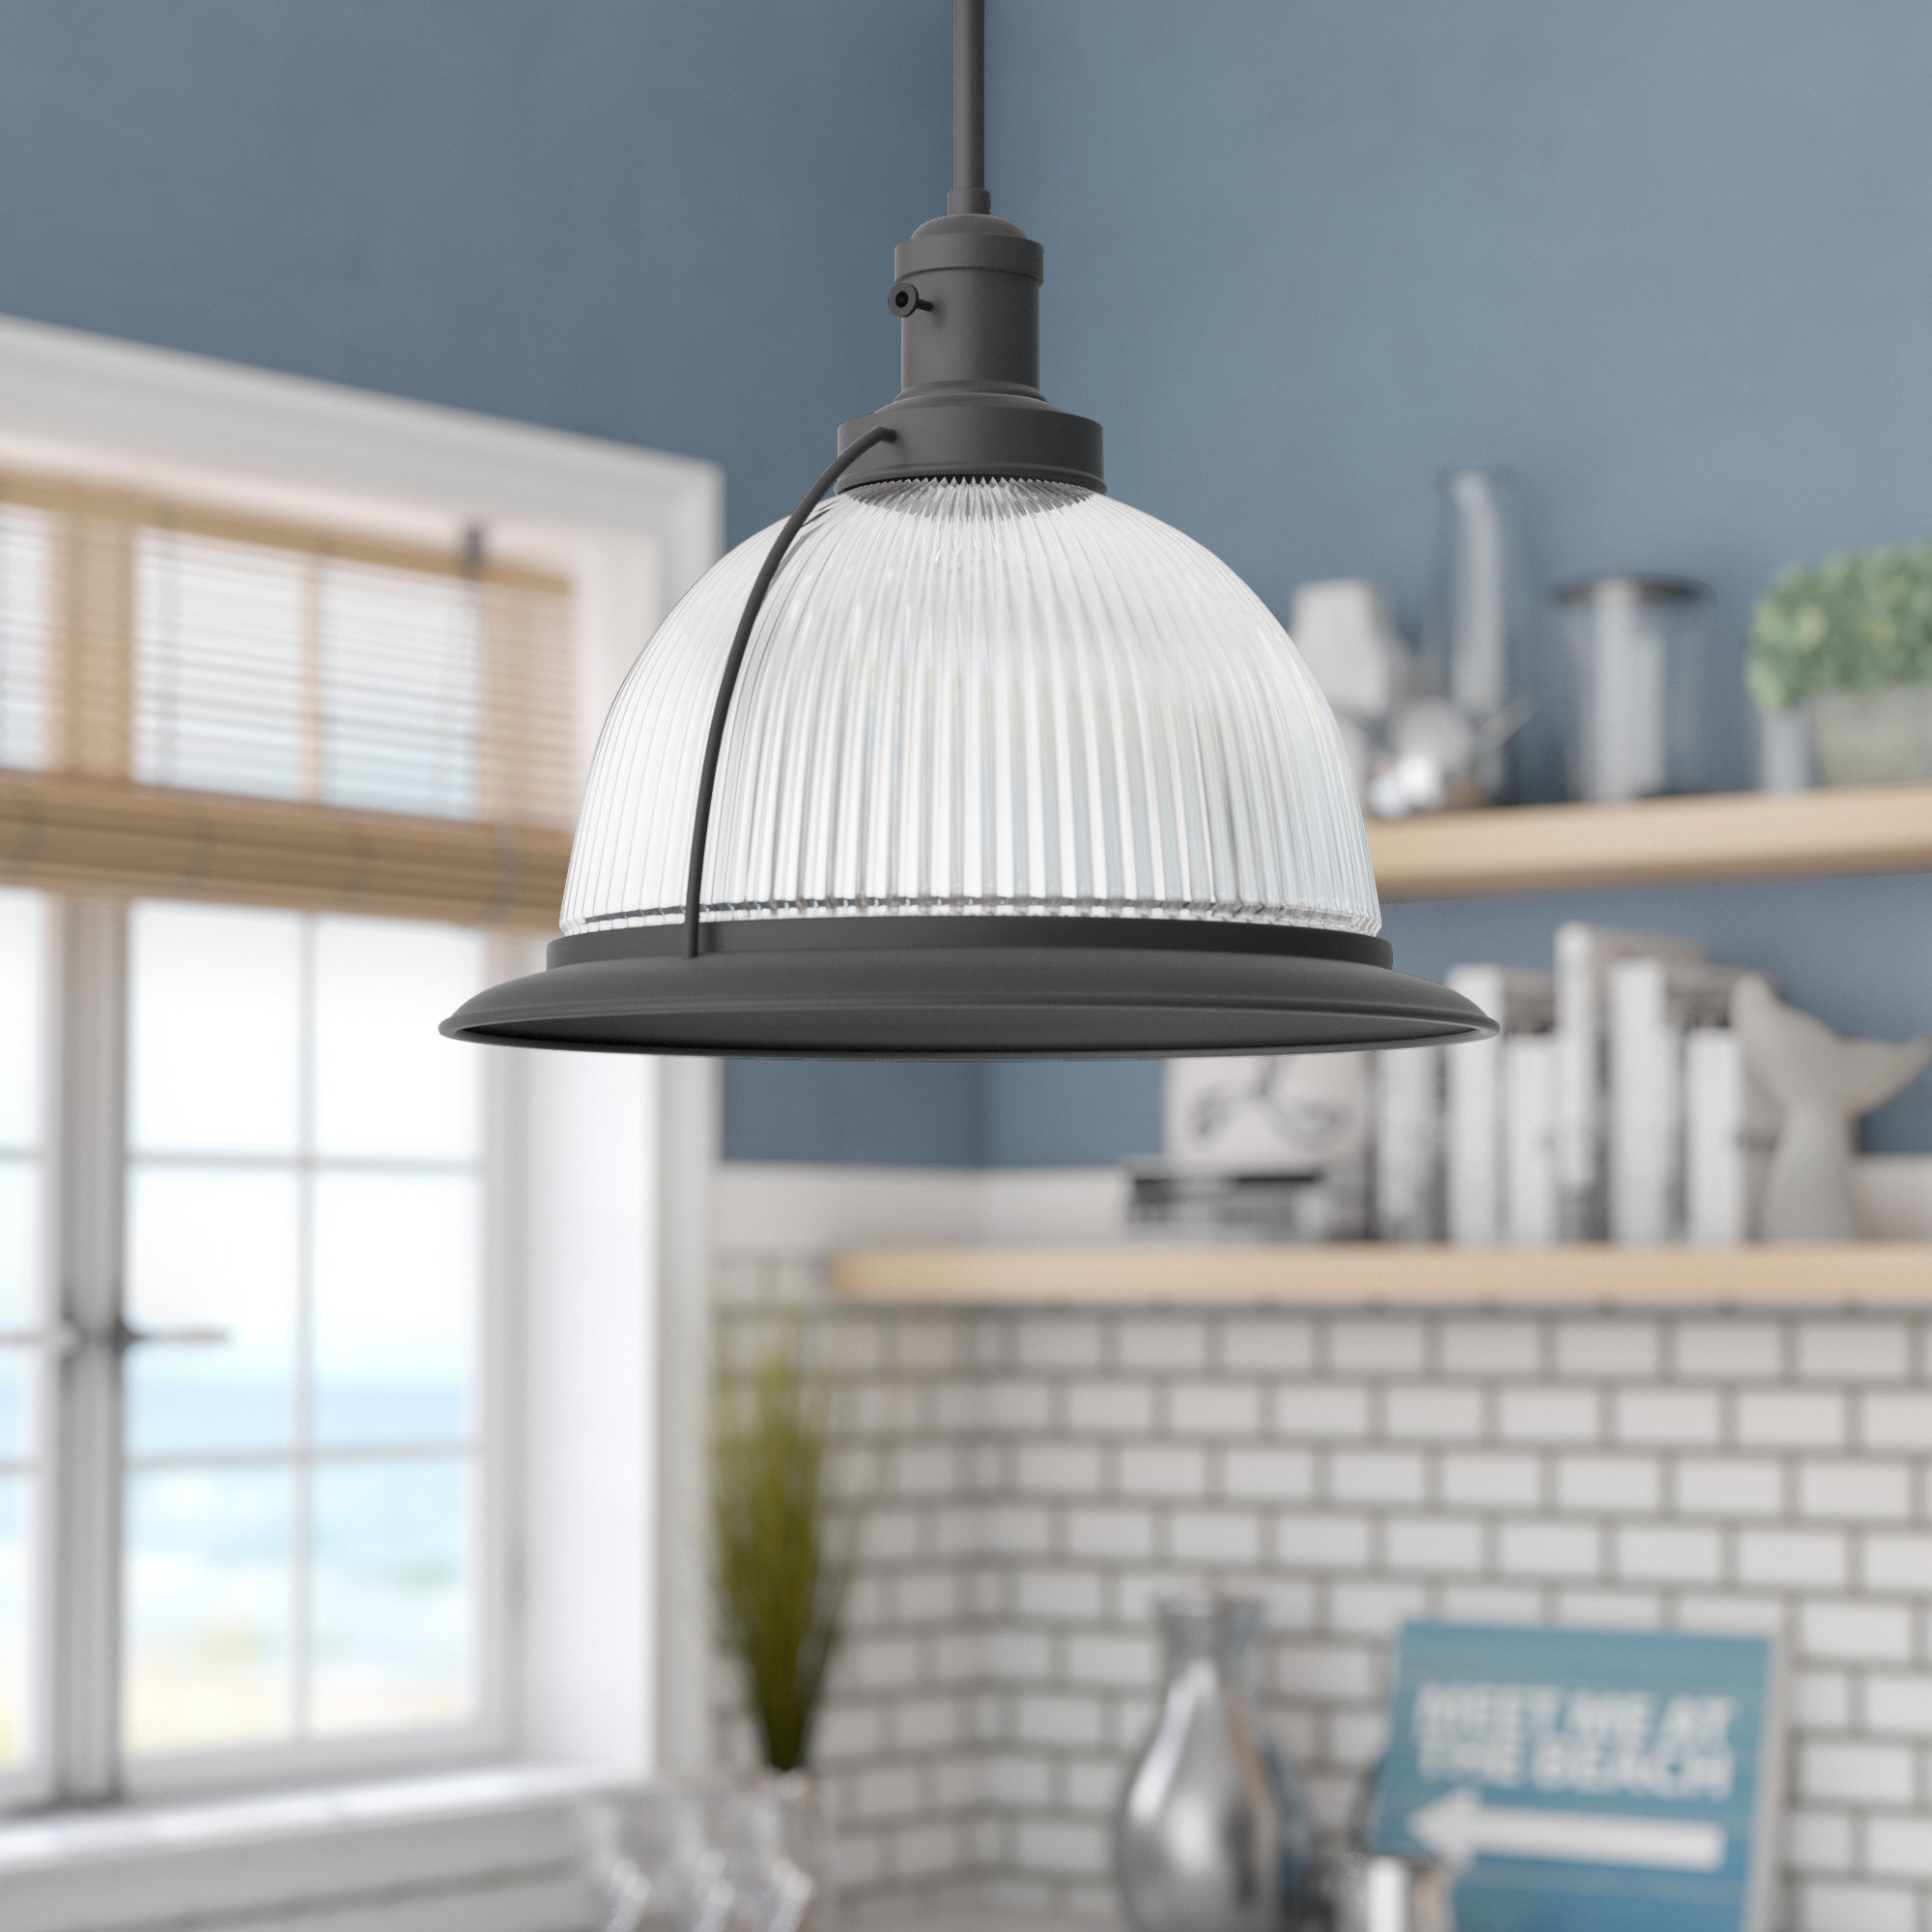 Delway 1 Light Single Dome Pendant With Granville 3 Light Single Dome Pendants (Gallery 8 of 30)